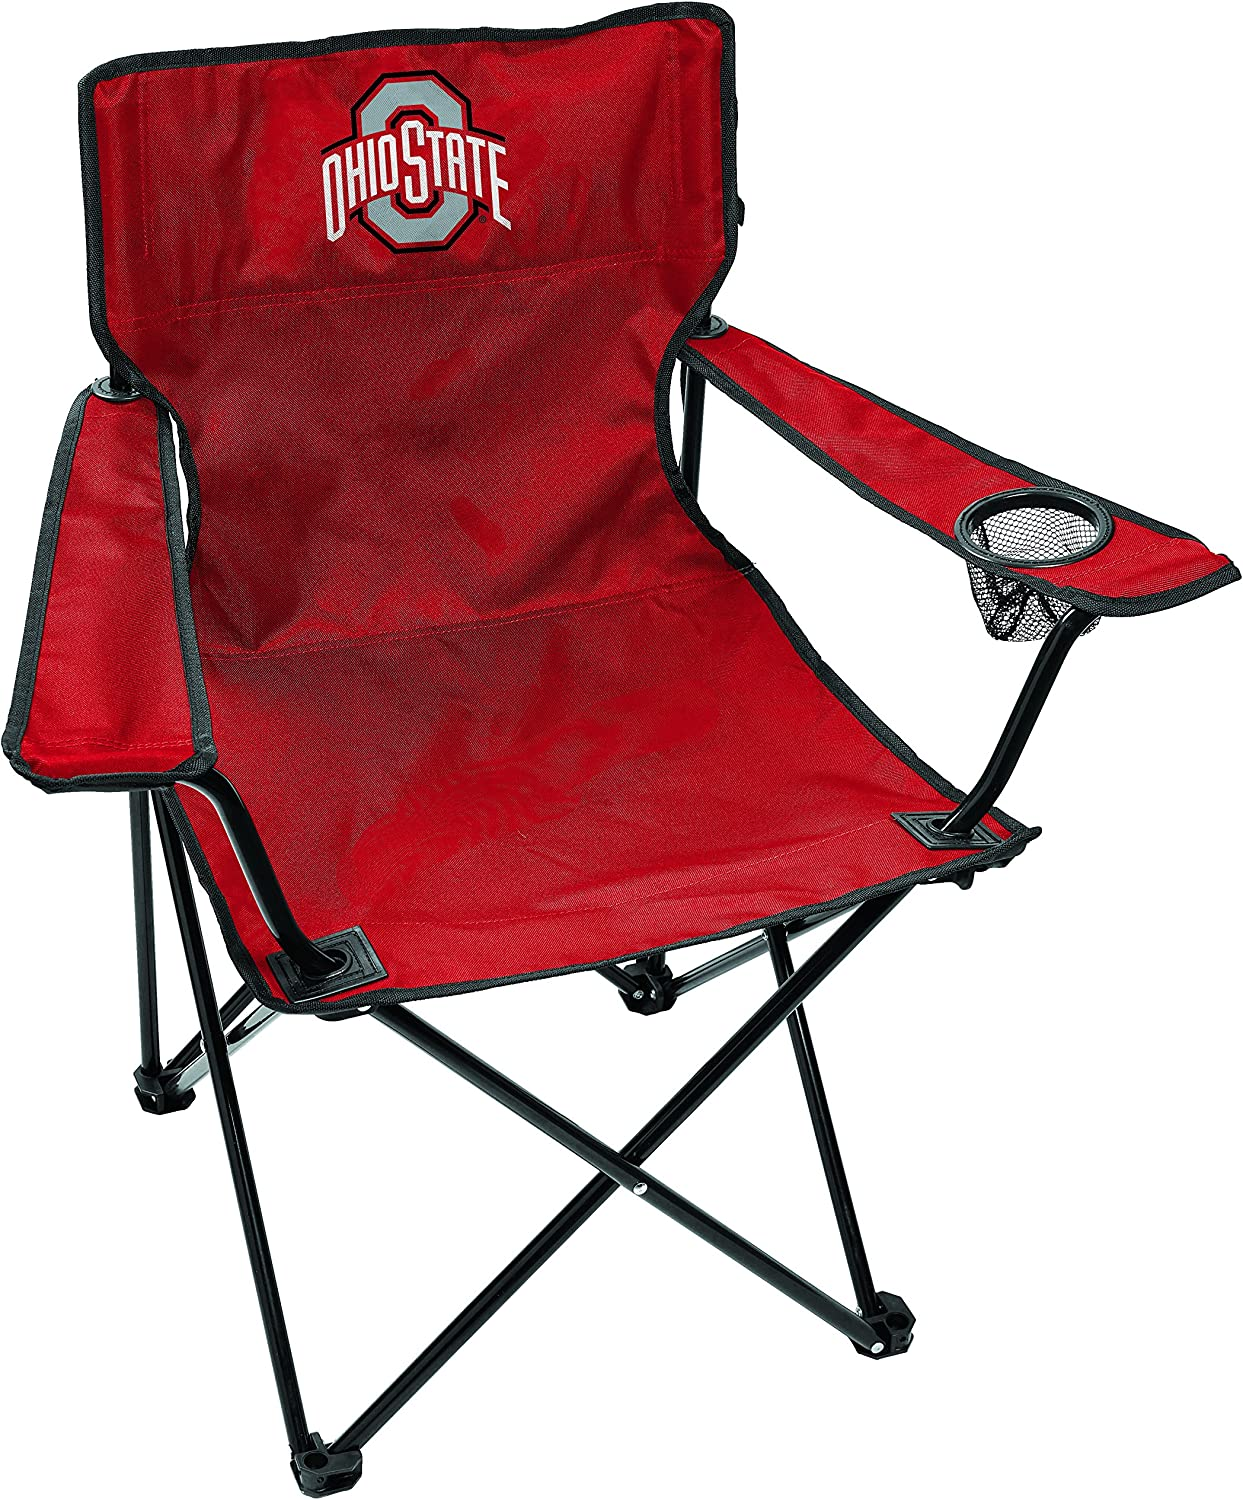 Rawlings NCAA Gameday Elite Lightweight Folding Tailgating Chair Ohio State Buckeyes with Carrying Case